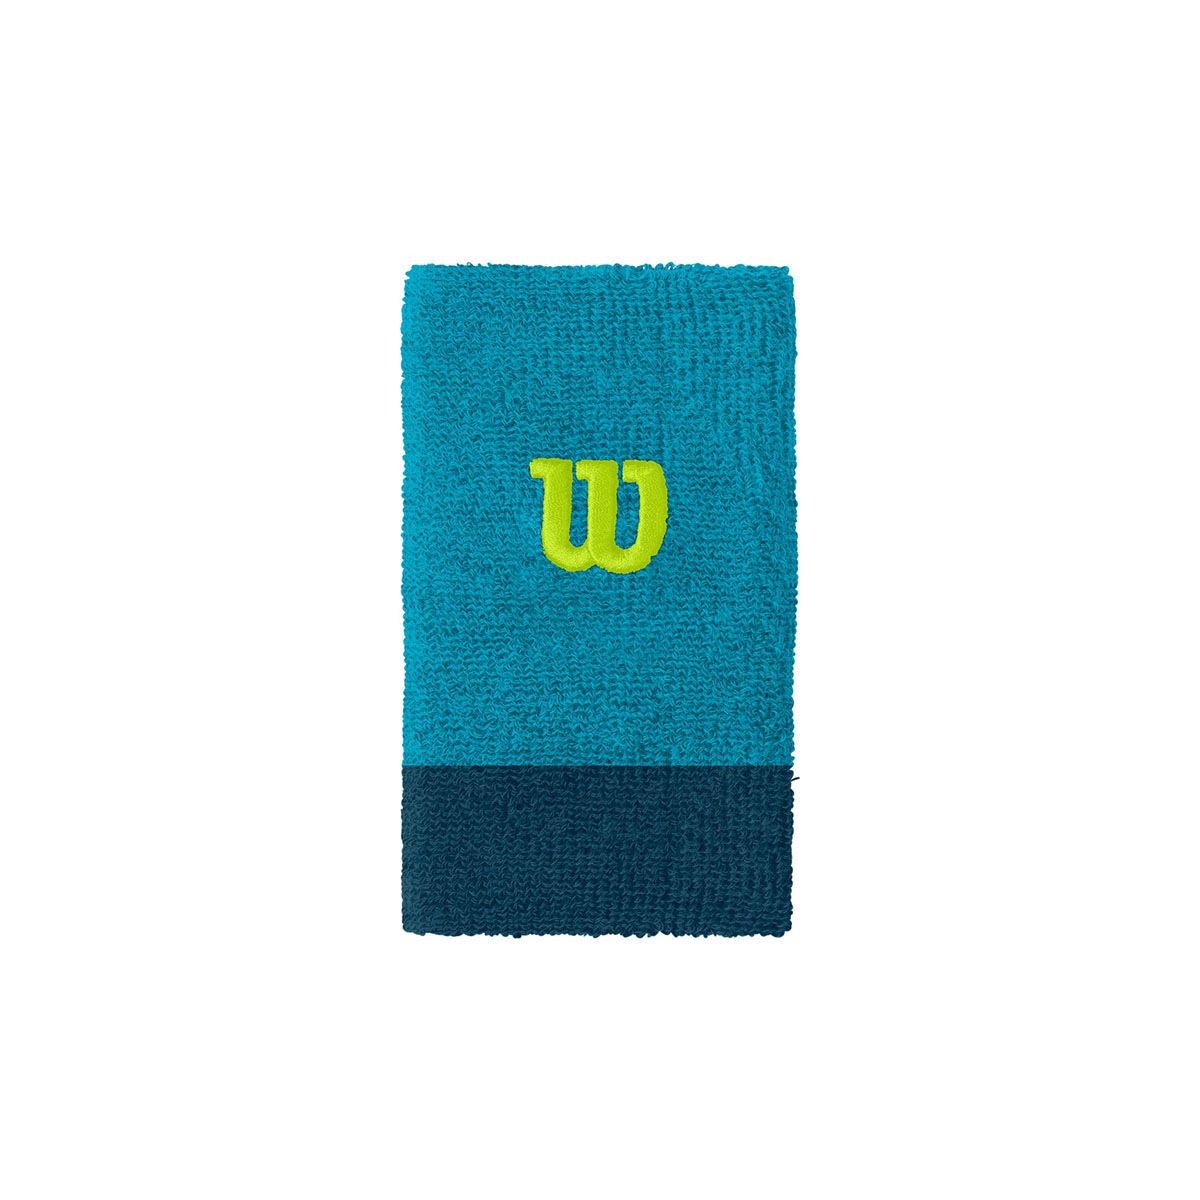 WRA733523_0_SS21_Acc_Extra_Wide_W_Wristband_BarrierReef_MajolicaBlue.png.cq5dam.web.2000.2000